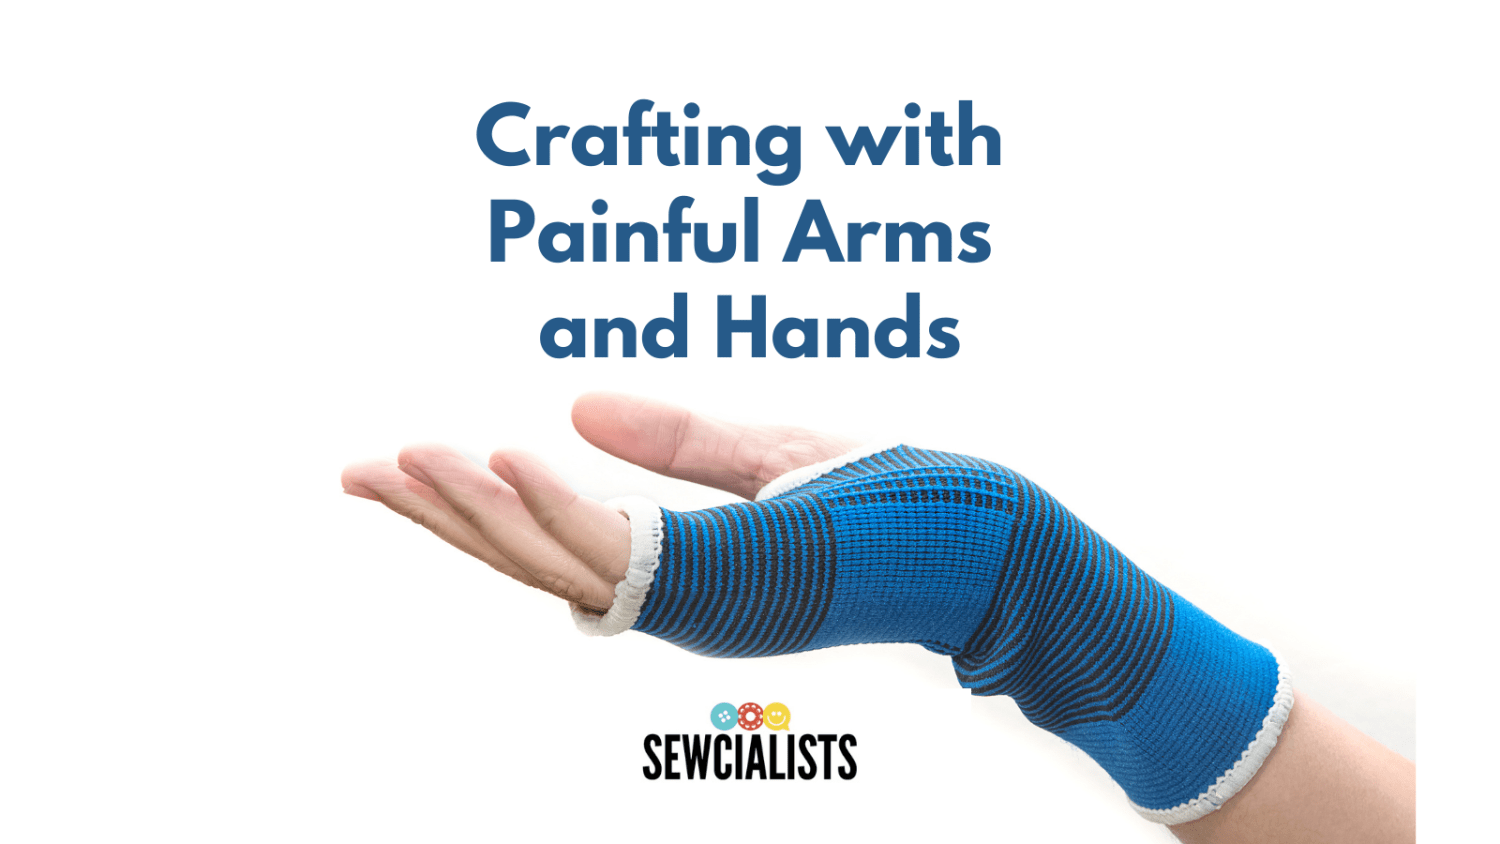 """Photo of a white skinned hand and wrist with a blue flexible brace, palm upward. the text above the image states """"Crafting with painful arms and hands"""" and the Sewcialists logo is beneath the photo."""